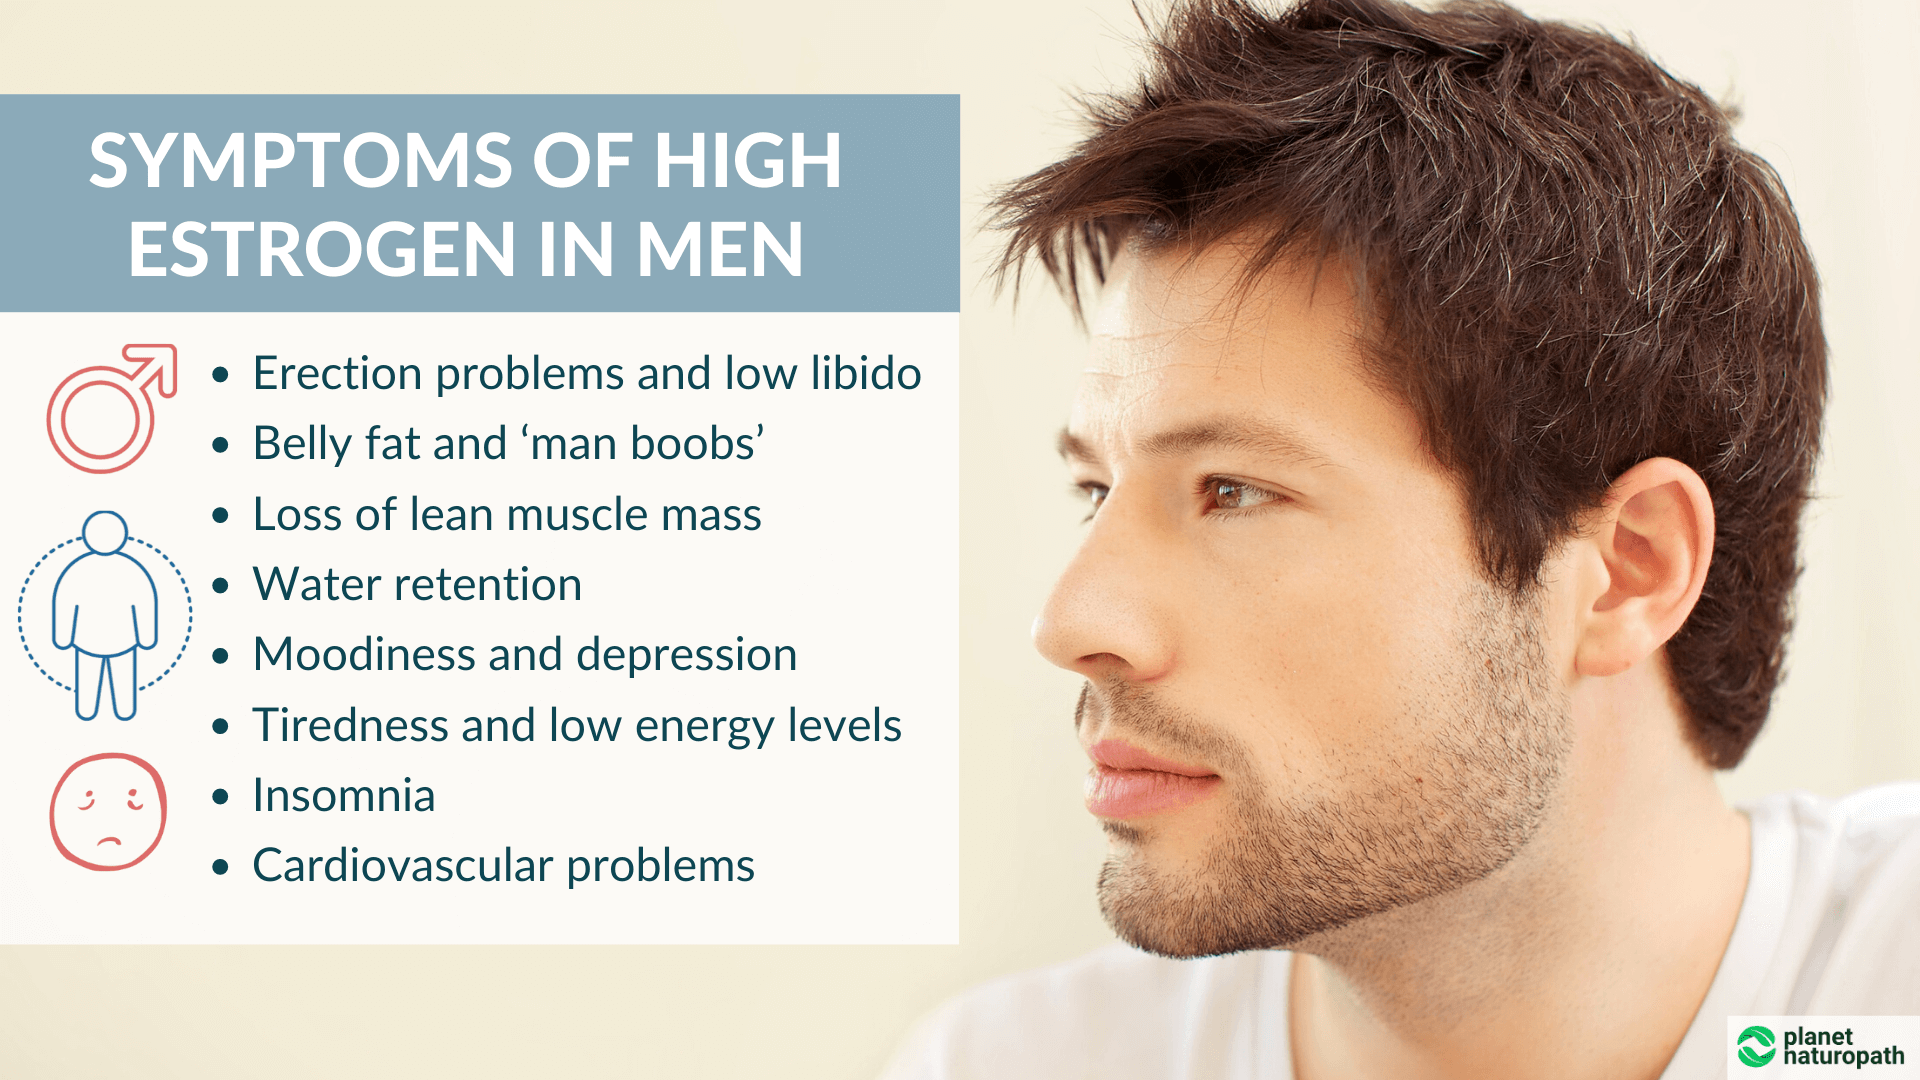 Symptoms-of-High-Estrogen-in-Men